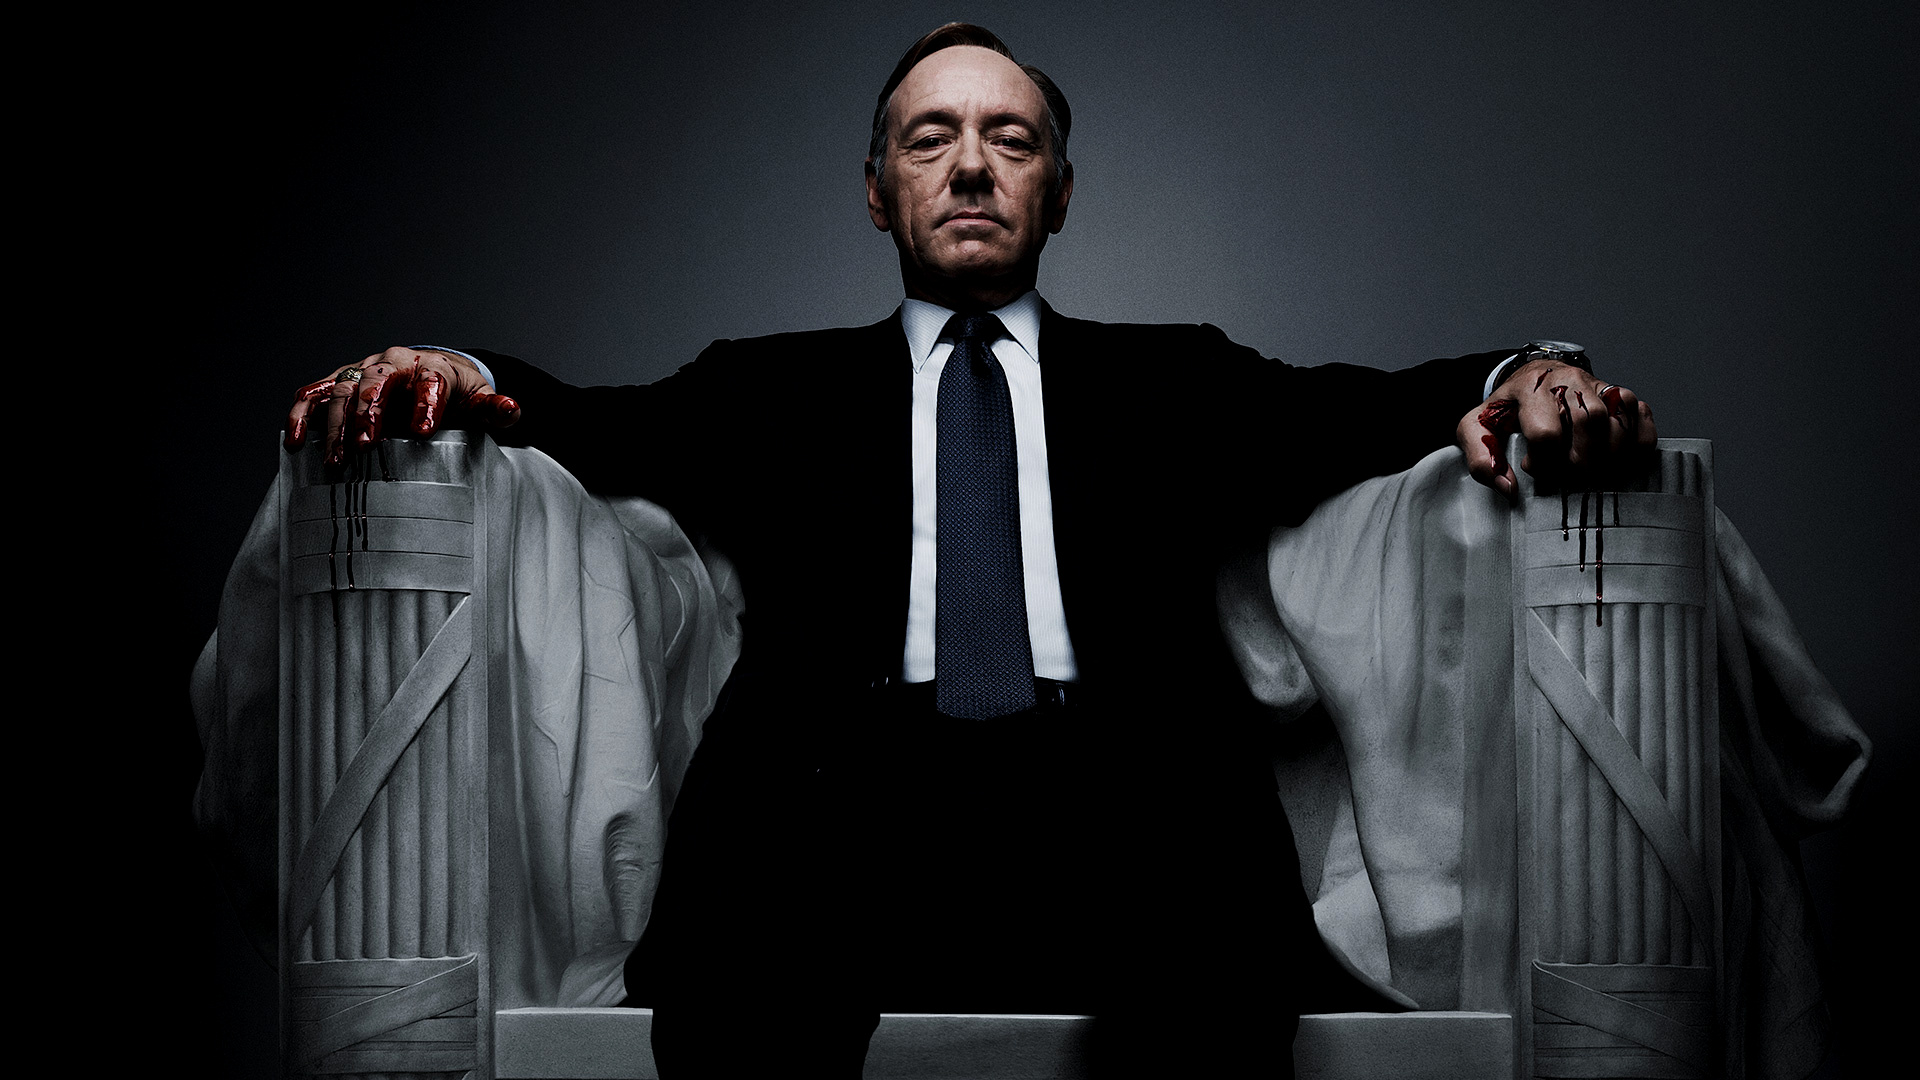 House of Cards Season 3 Premiere Date Announced